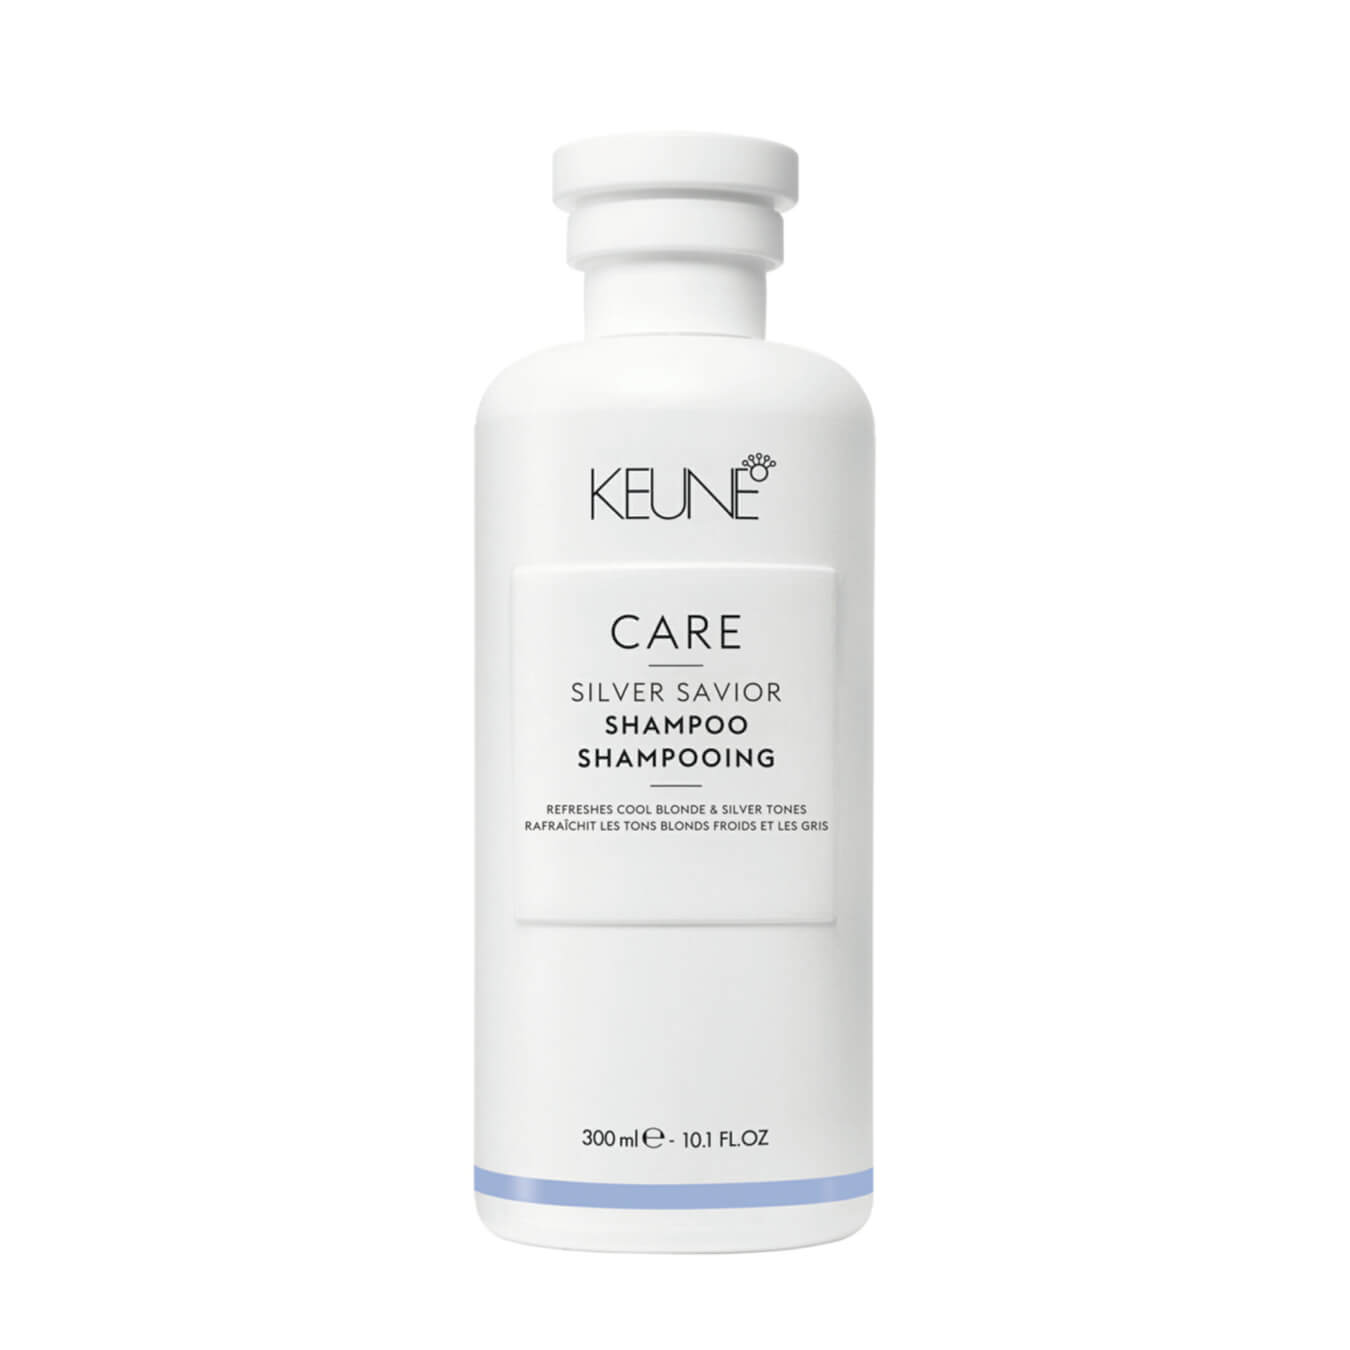 Kauf Keune Care Silver Savior Shampoo 300ml